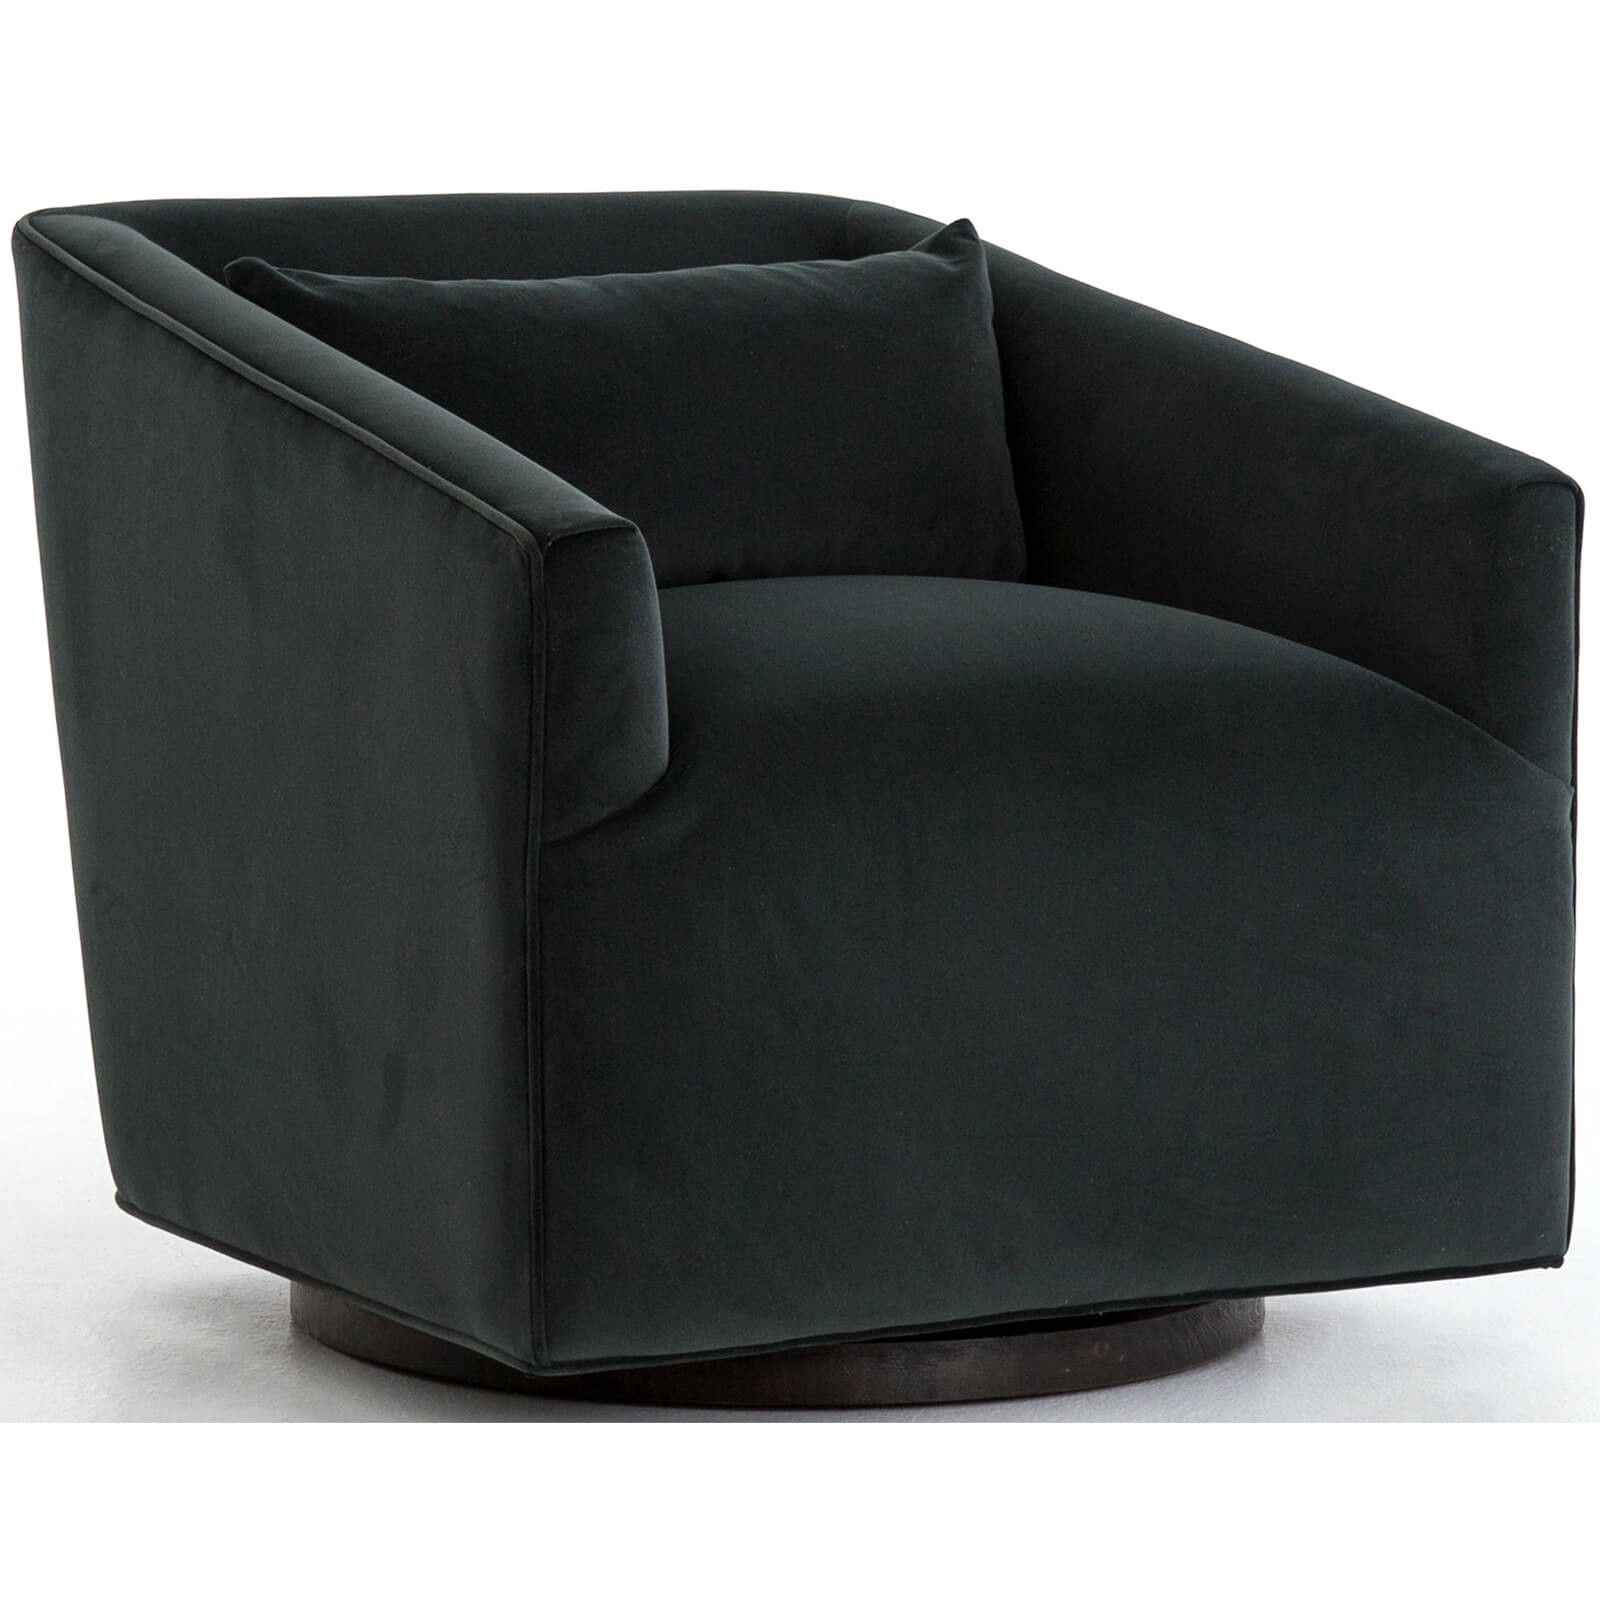 Swivel Chaise Lounge Chair Wing Recliner York Smoke Corporate Warehouse District